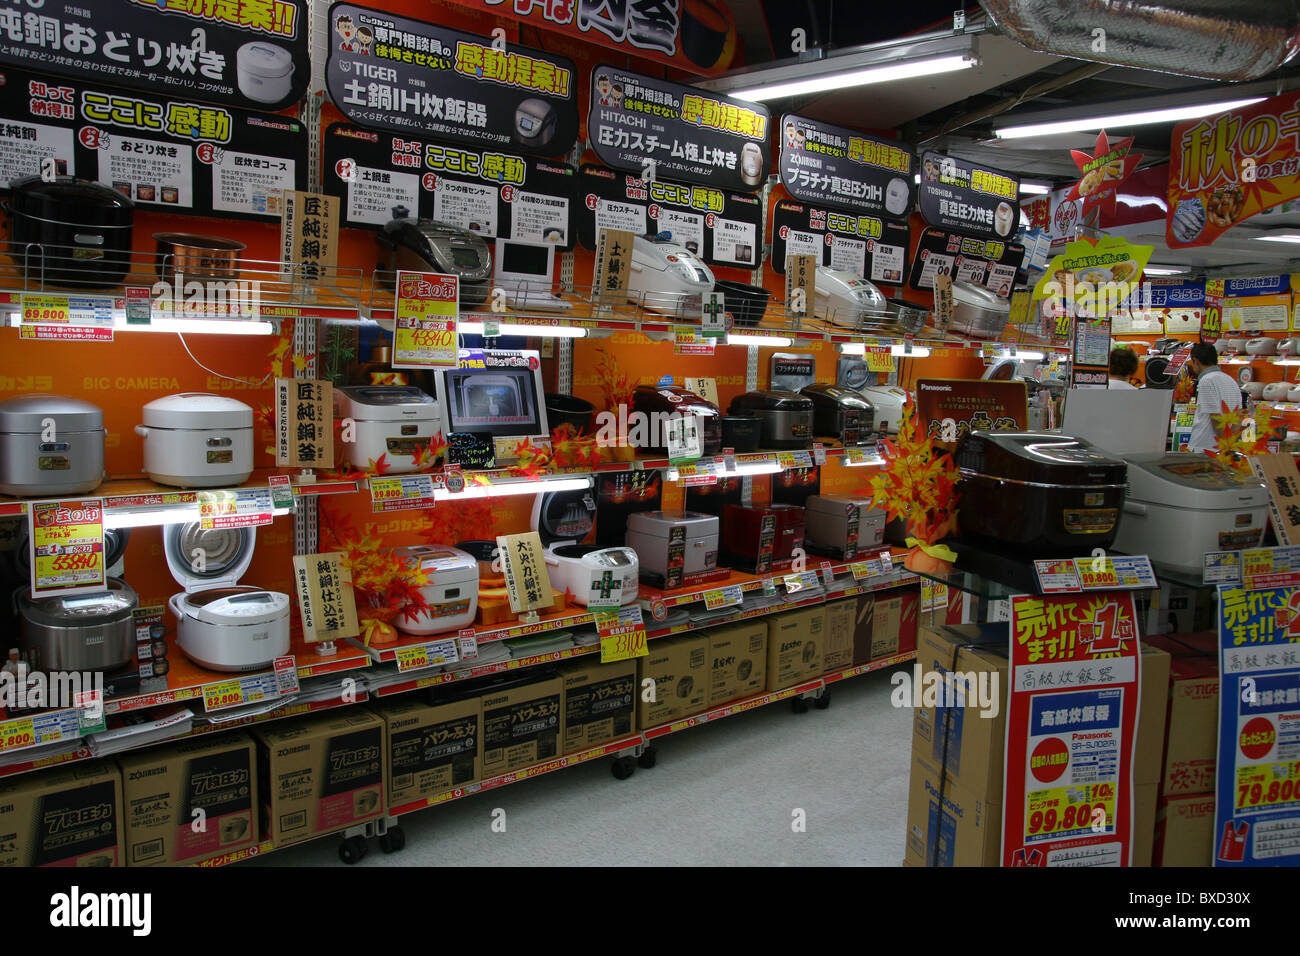 Electric rice cookers for sale in Bic Camera store in Tokyo Japan 2010 - Stock Image